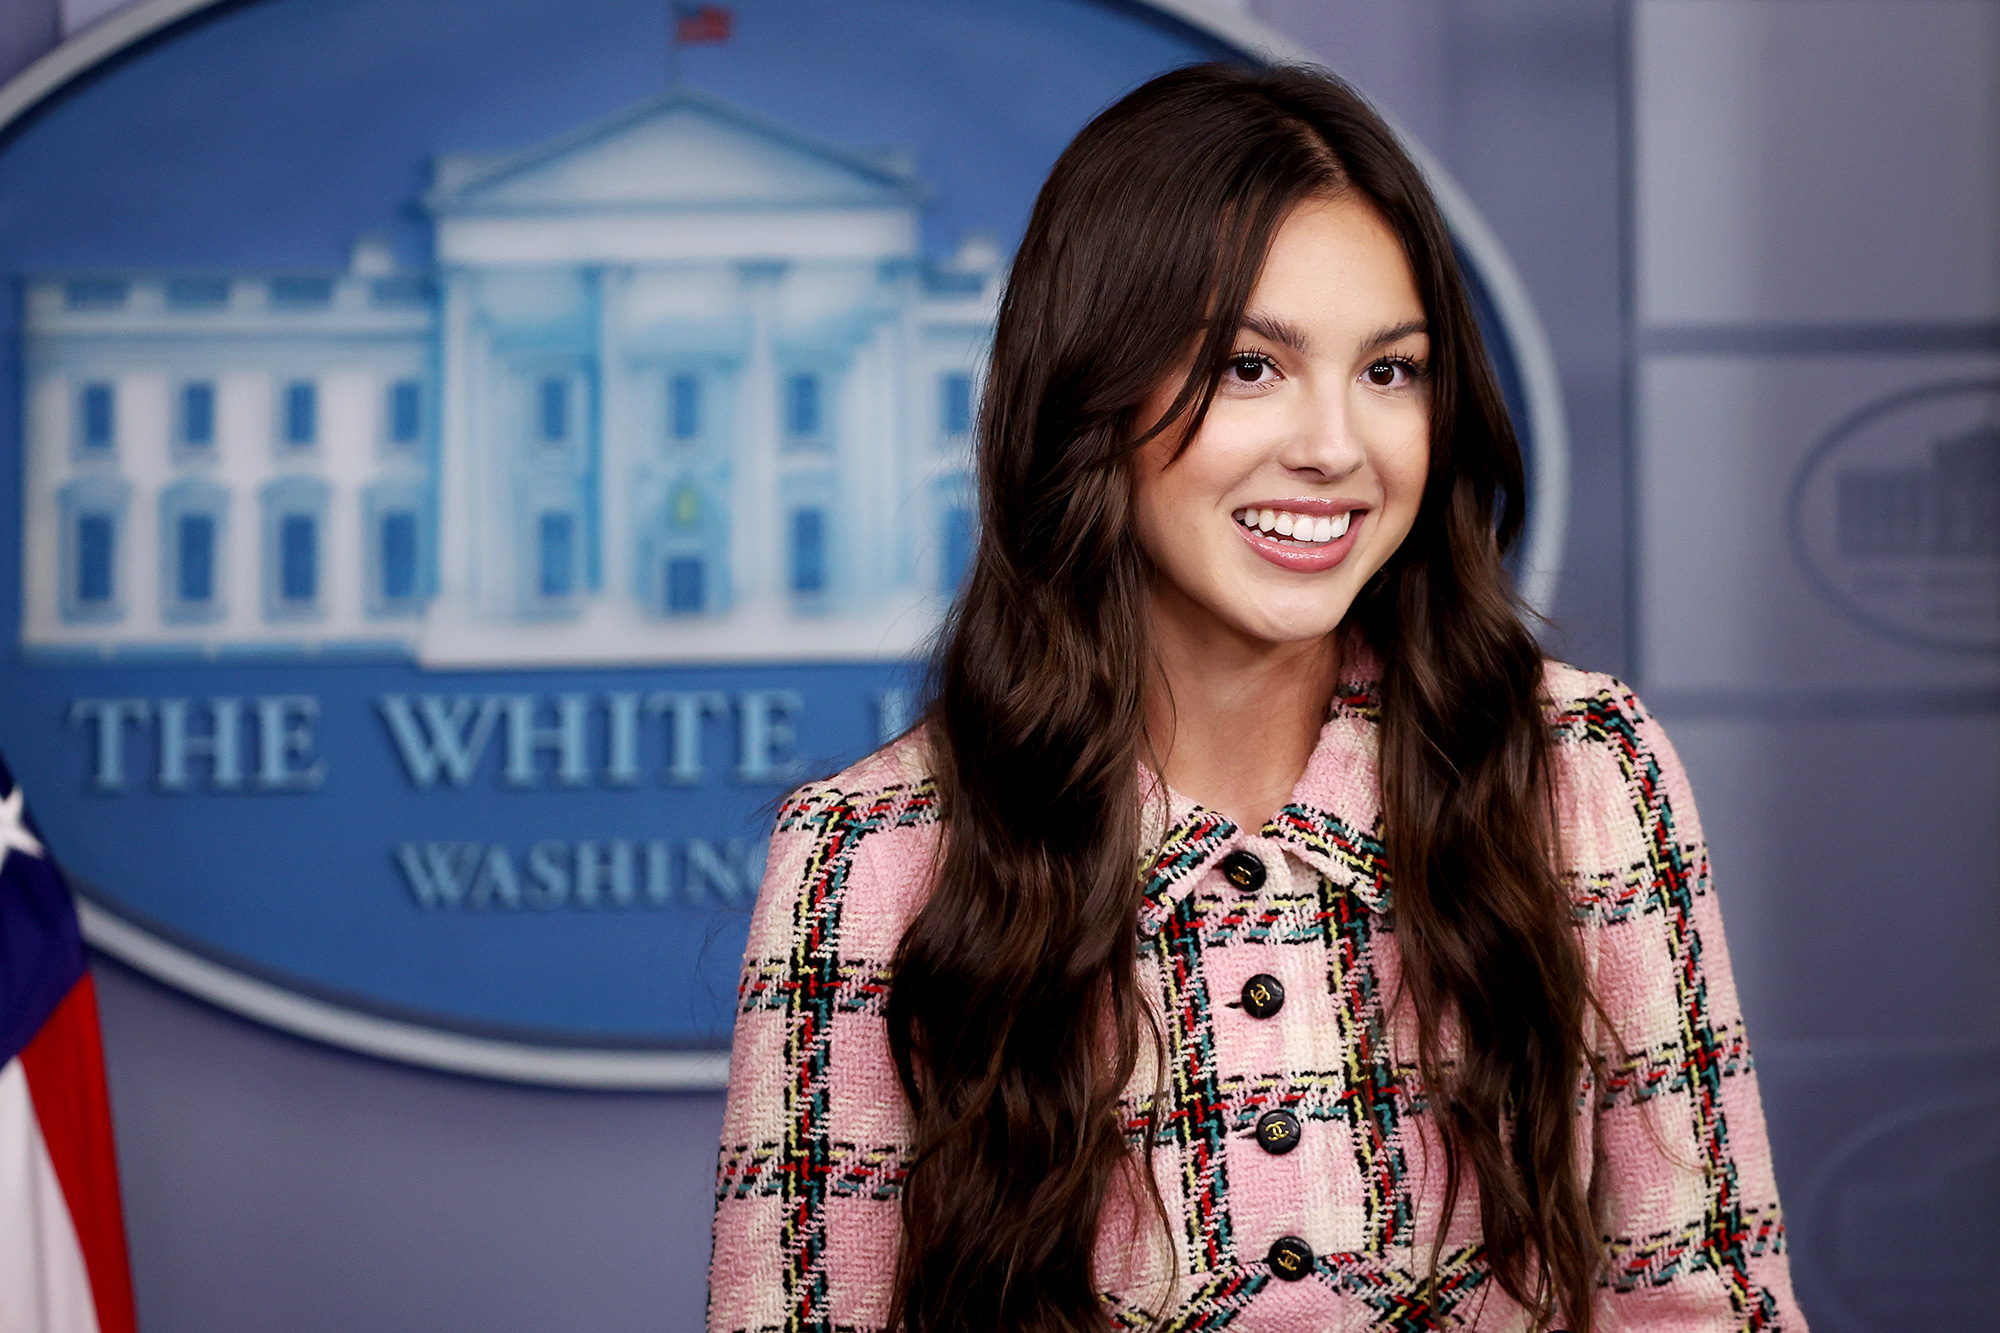 Olivia Rodrigo makes a brief statement to reporters at the beginning of the daily news conference in the Brady Press Briefing Room at the White House on July 14, 2021 in Washington, DC